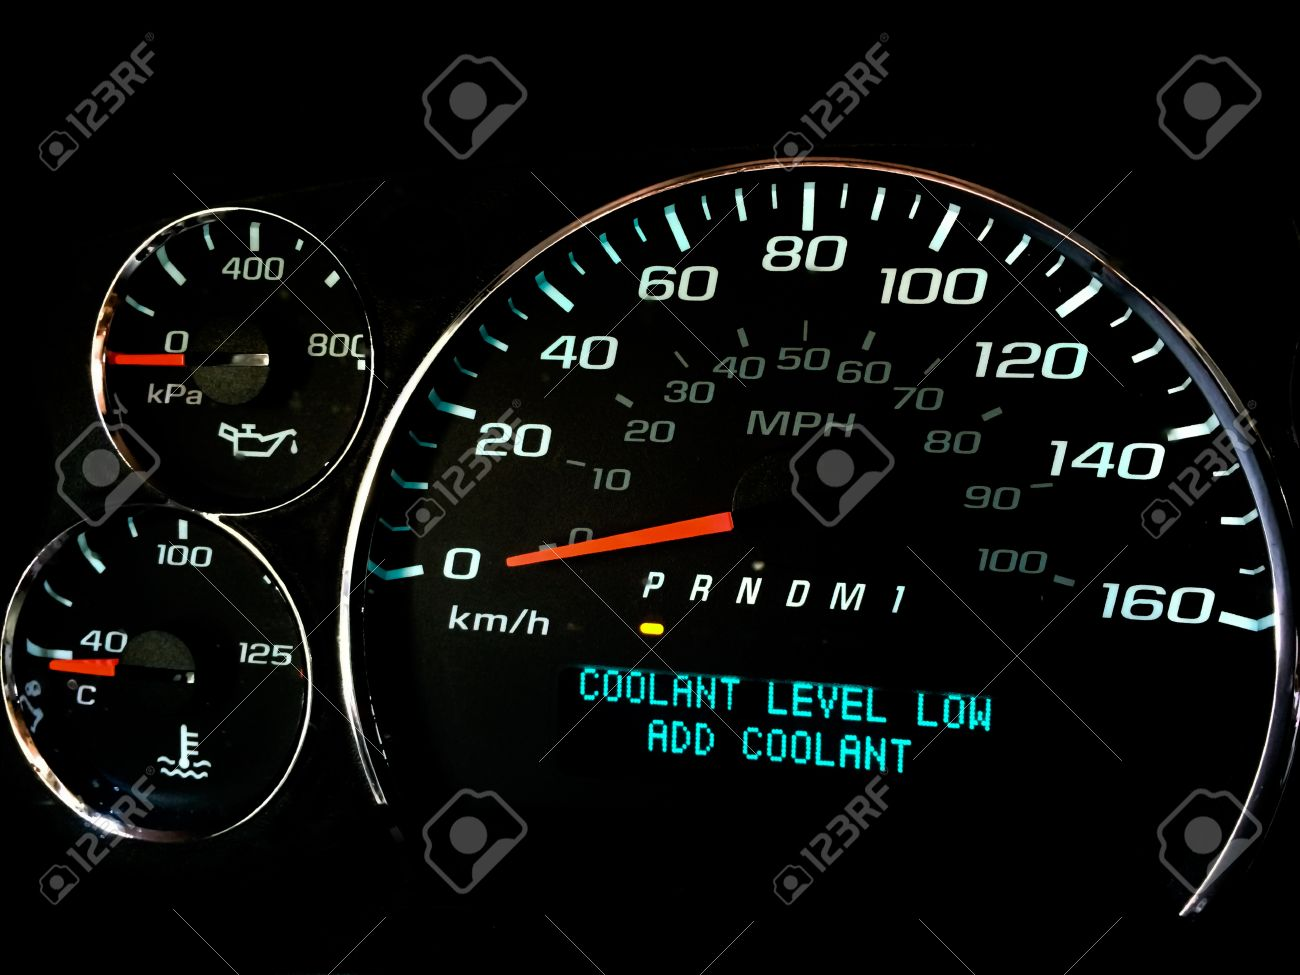 Coolant Level Low Warning Light On Dashboard Stock Photo Picture - Car image sign of dashboarddashboard warning lights stock images royaltyfree images